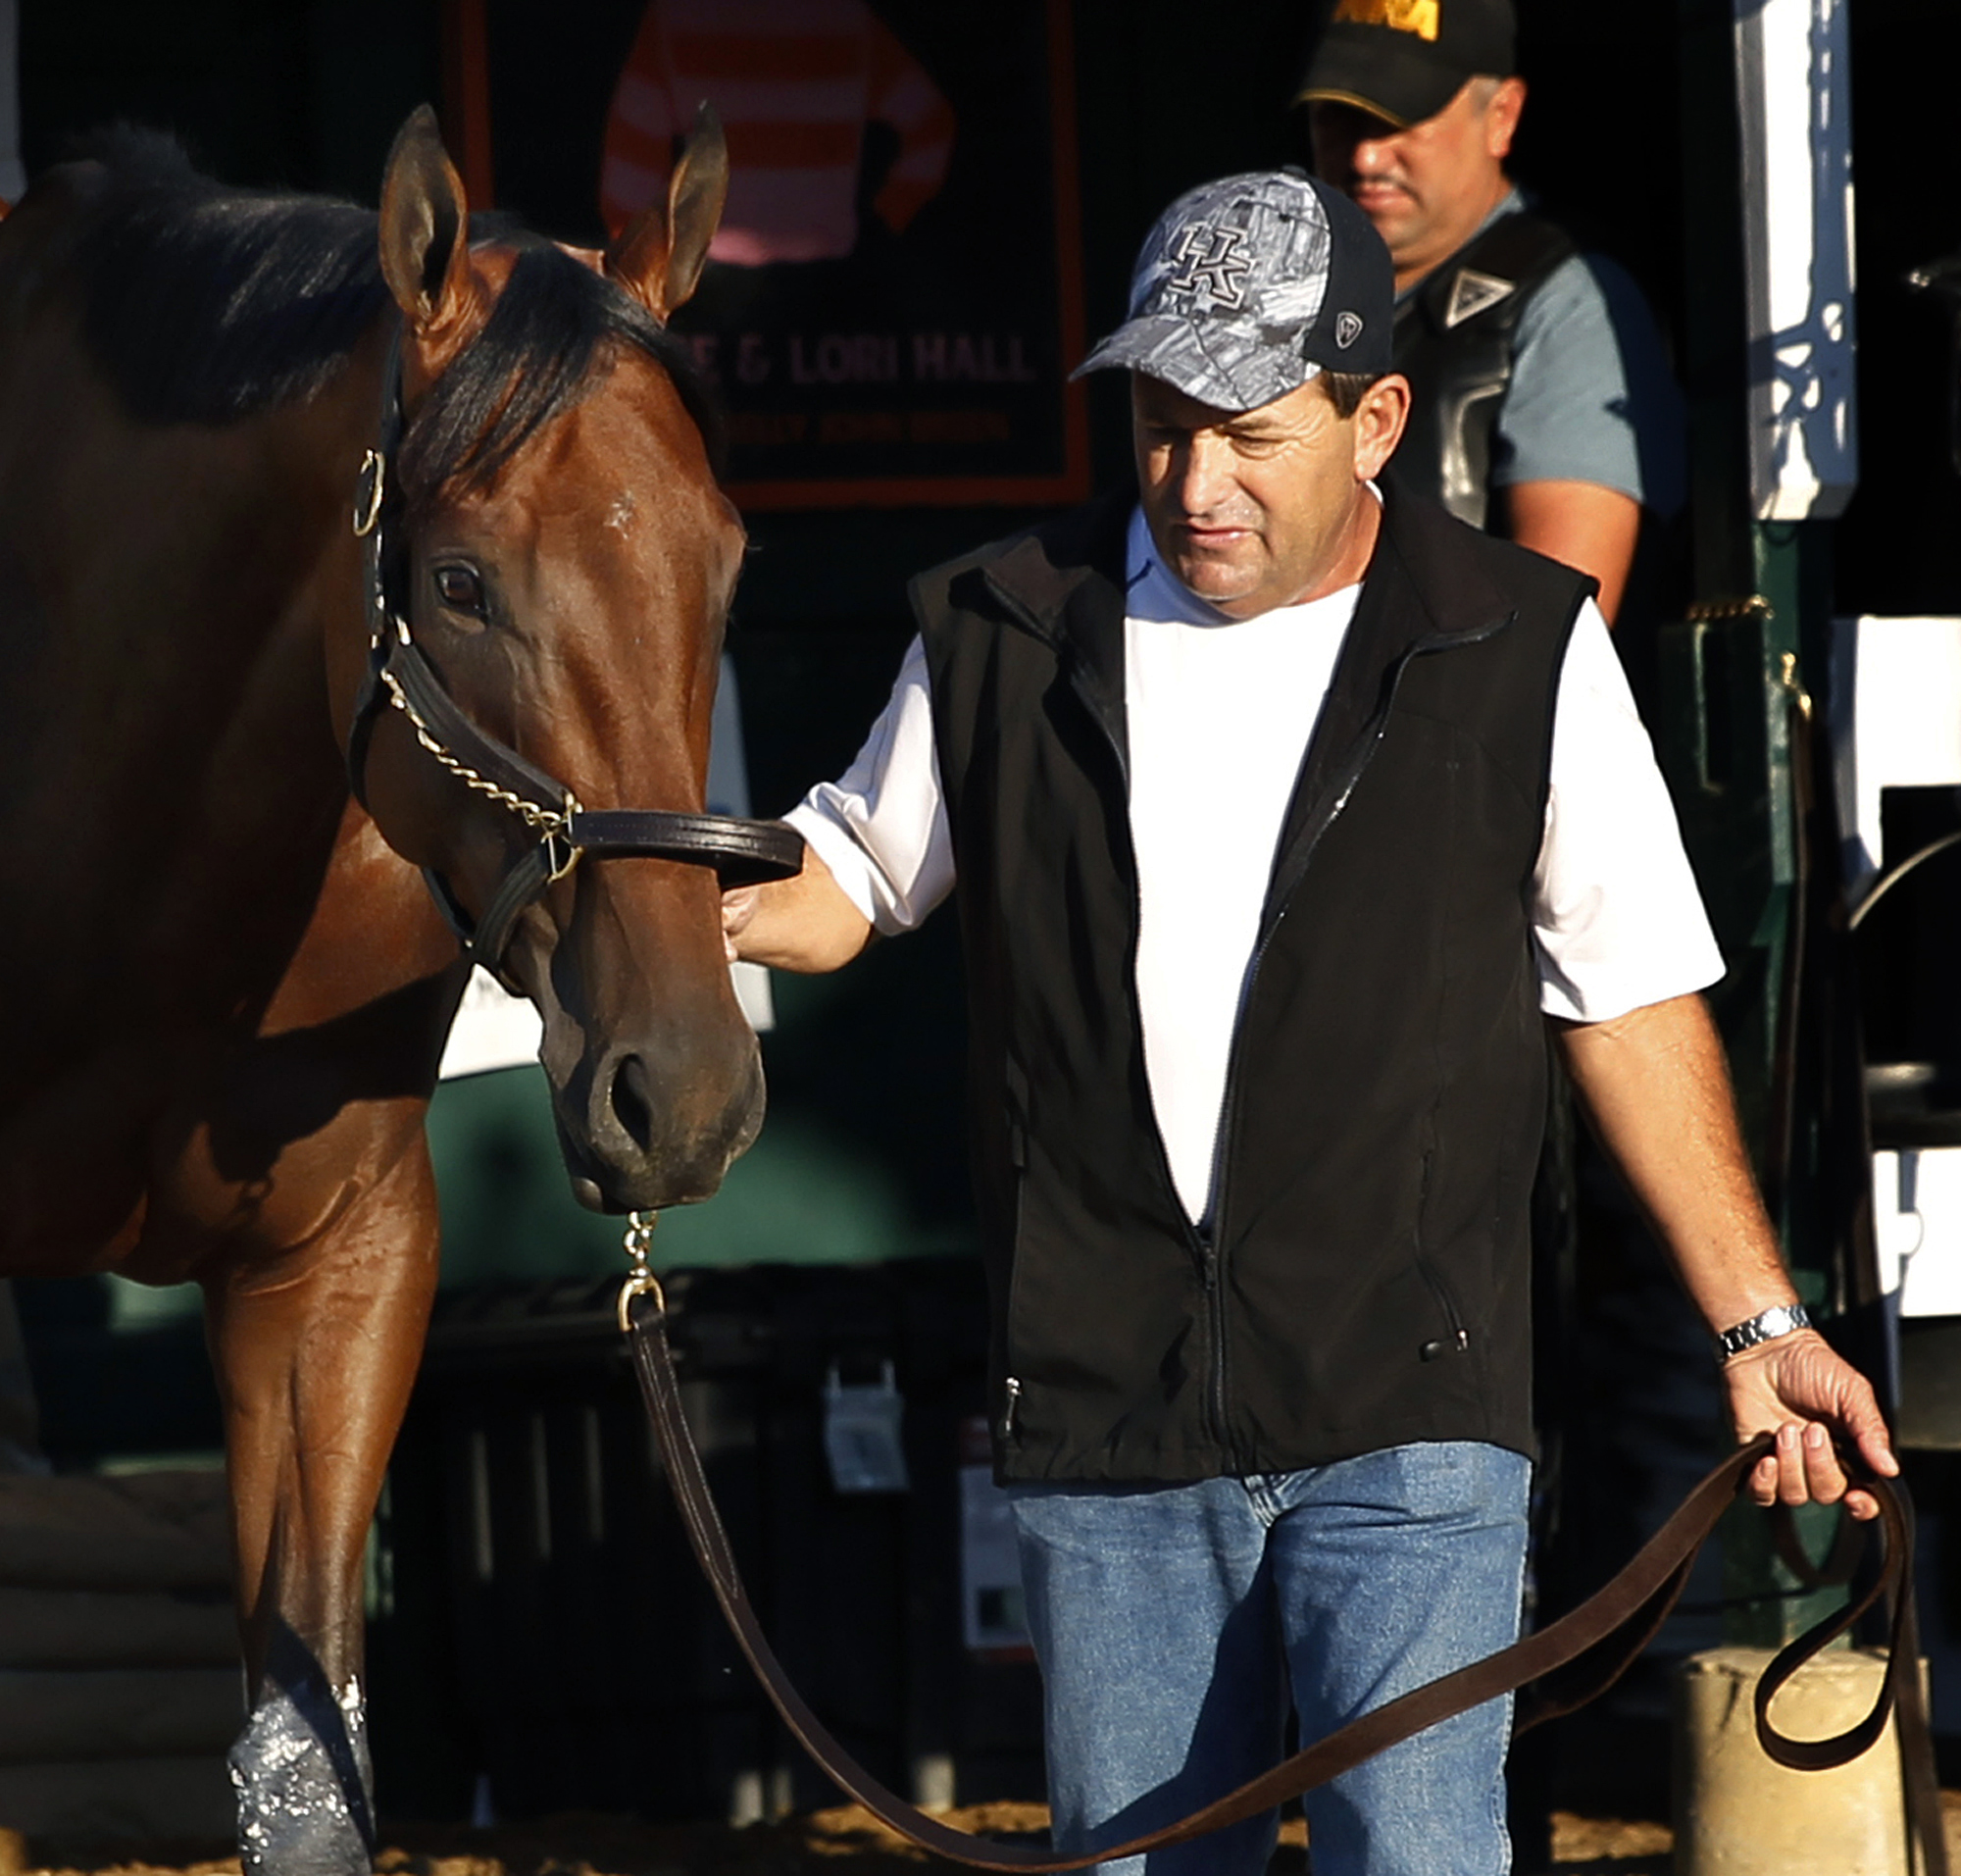 Assistant trainer Jimmy Barnes walks Triple Crown winner American Pharoah in the stable area at Monmouth Park in Oceanport, N.J., early Sunday, Aug. 2, 2015. American Pharoah is preparing for Sunday's running of the Haskell Invitational horse race. (AP Ph